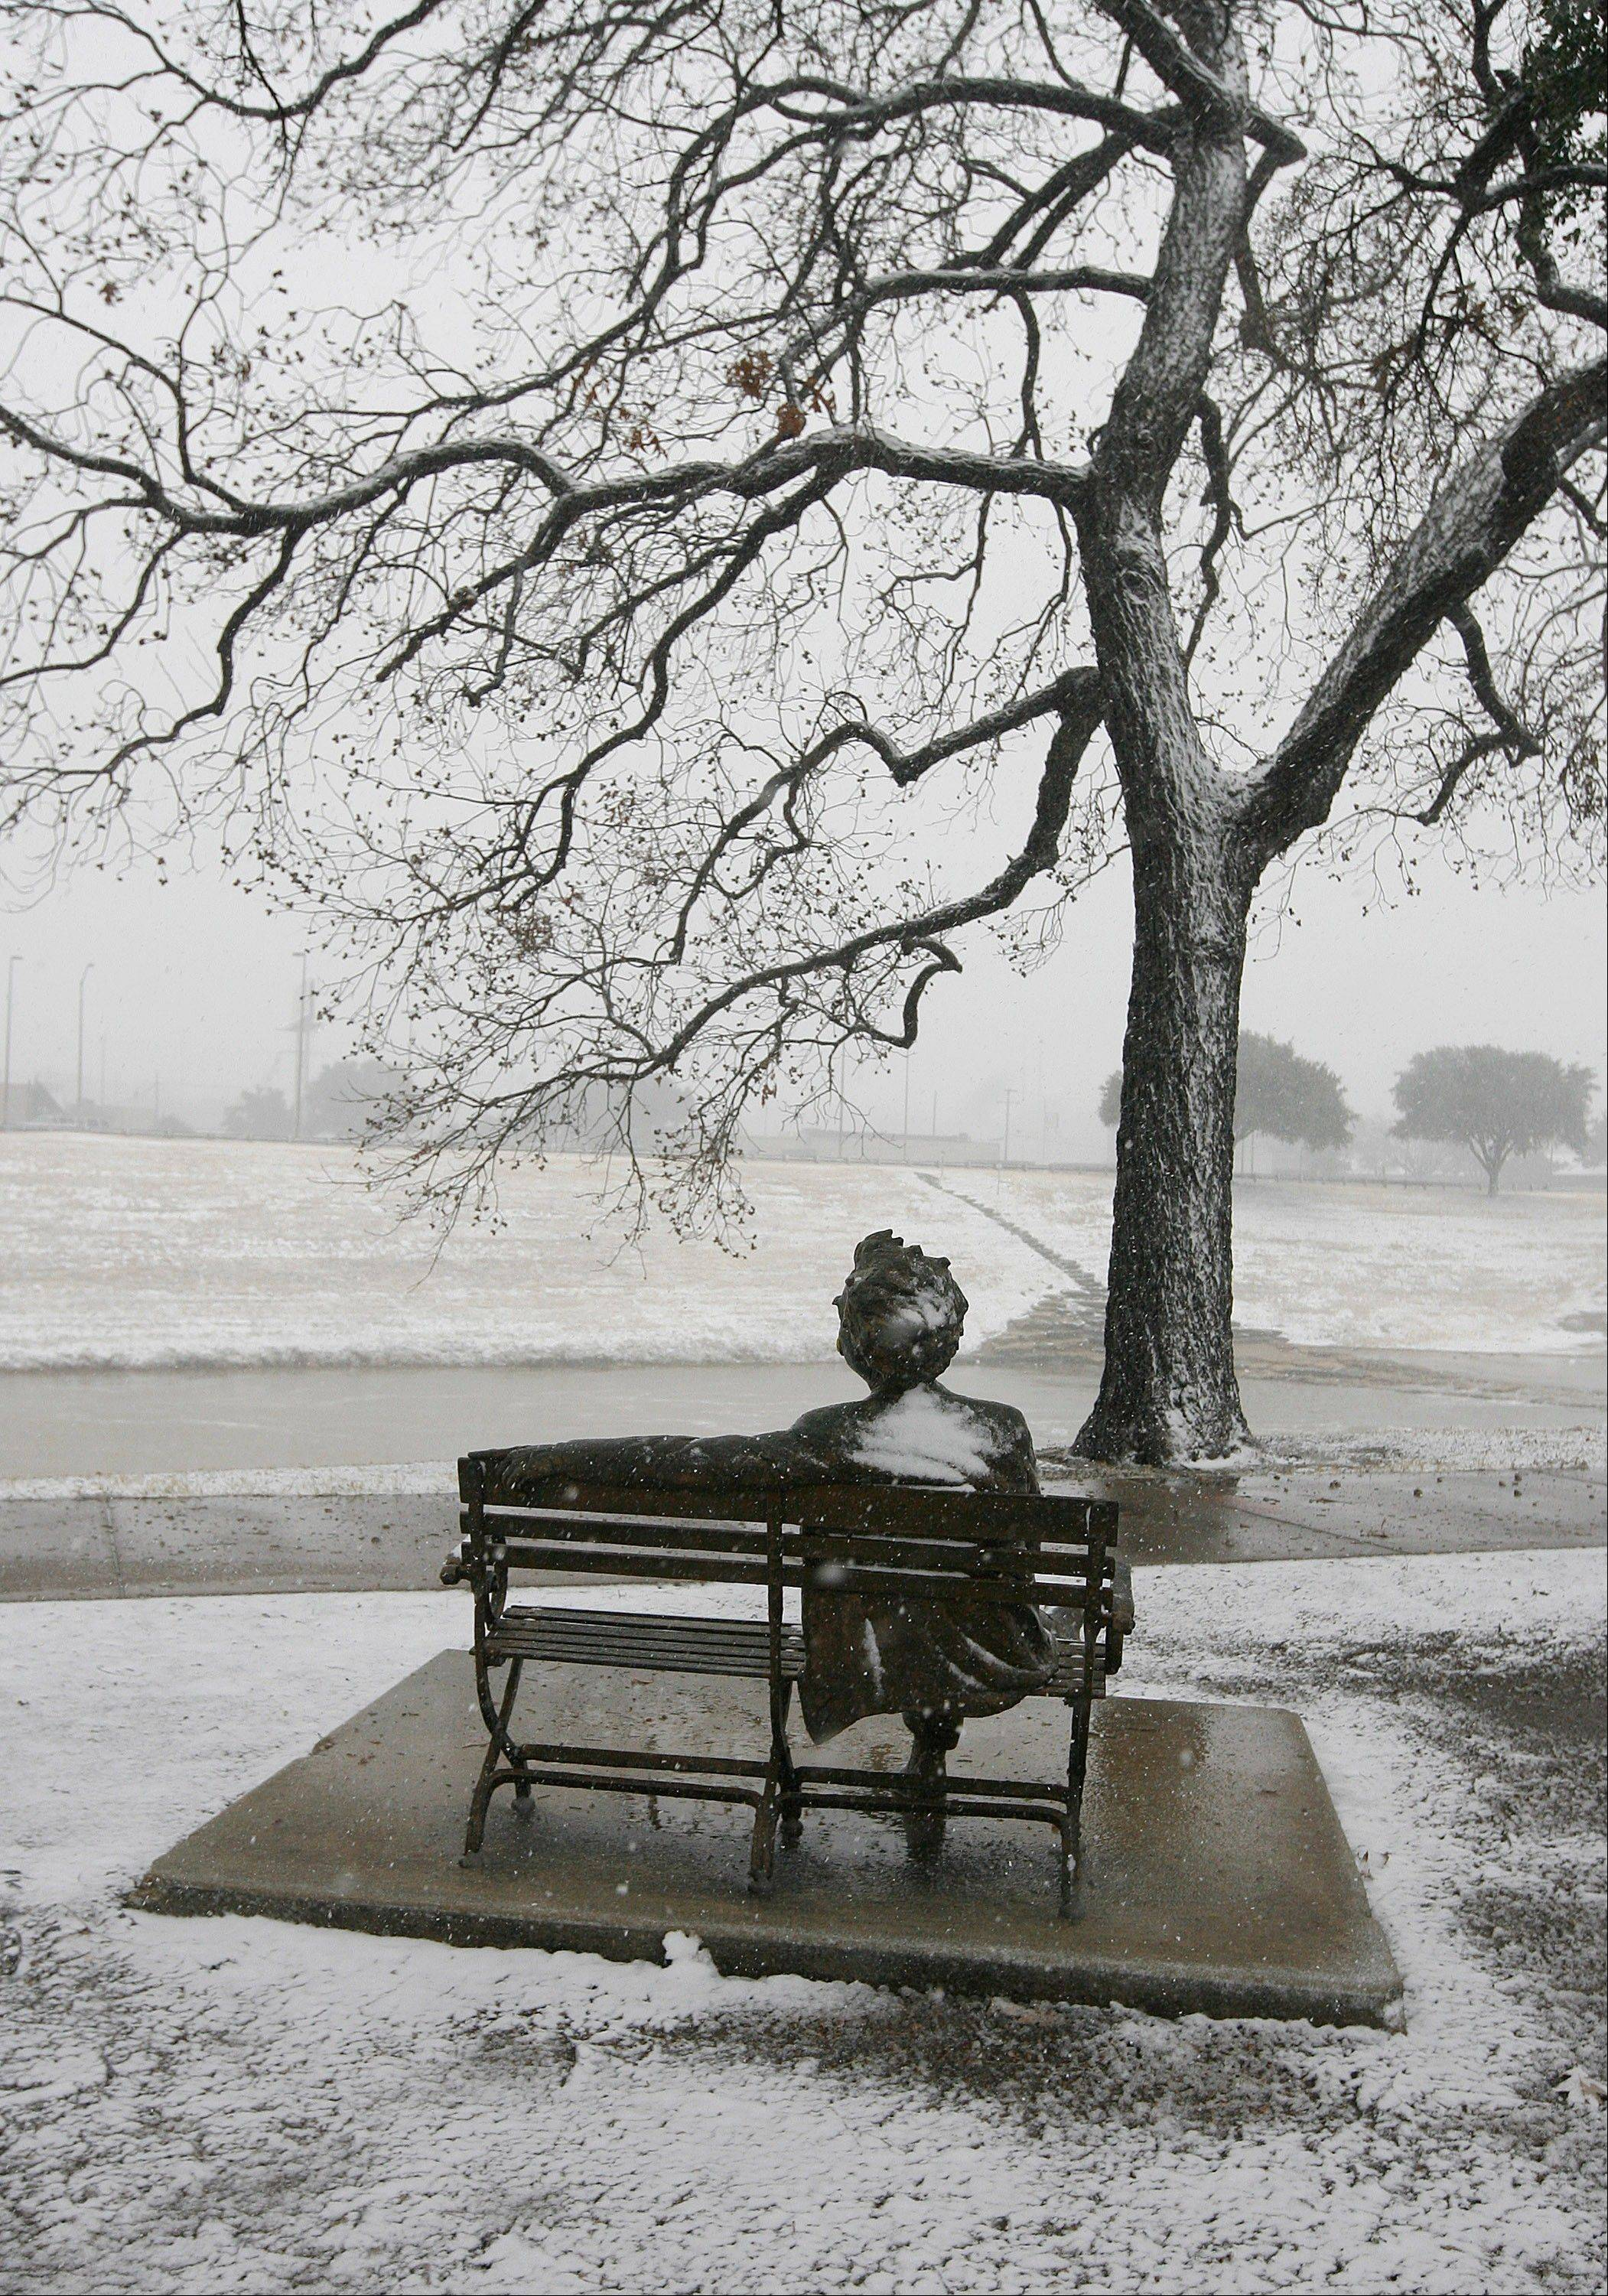 Snow falls on the Mark Twain statue on the banks of the Trinity River in Fort Worth, Texas on Christmas Day, Tuesday, Dec. 25, 2012.